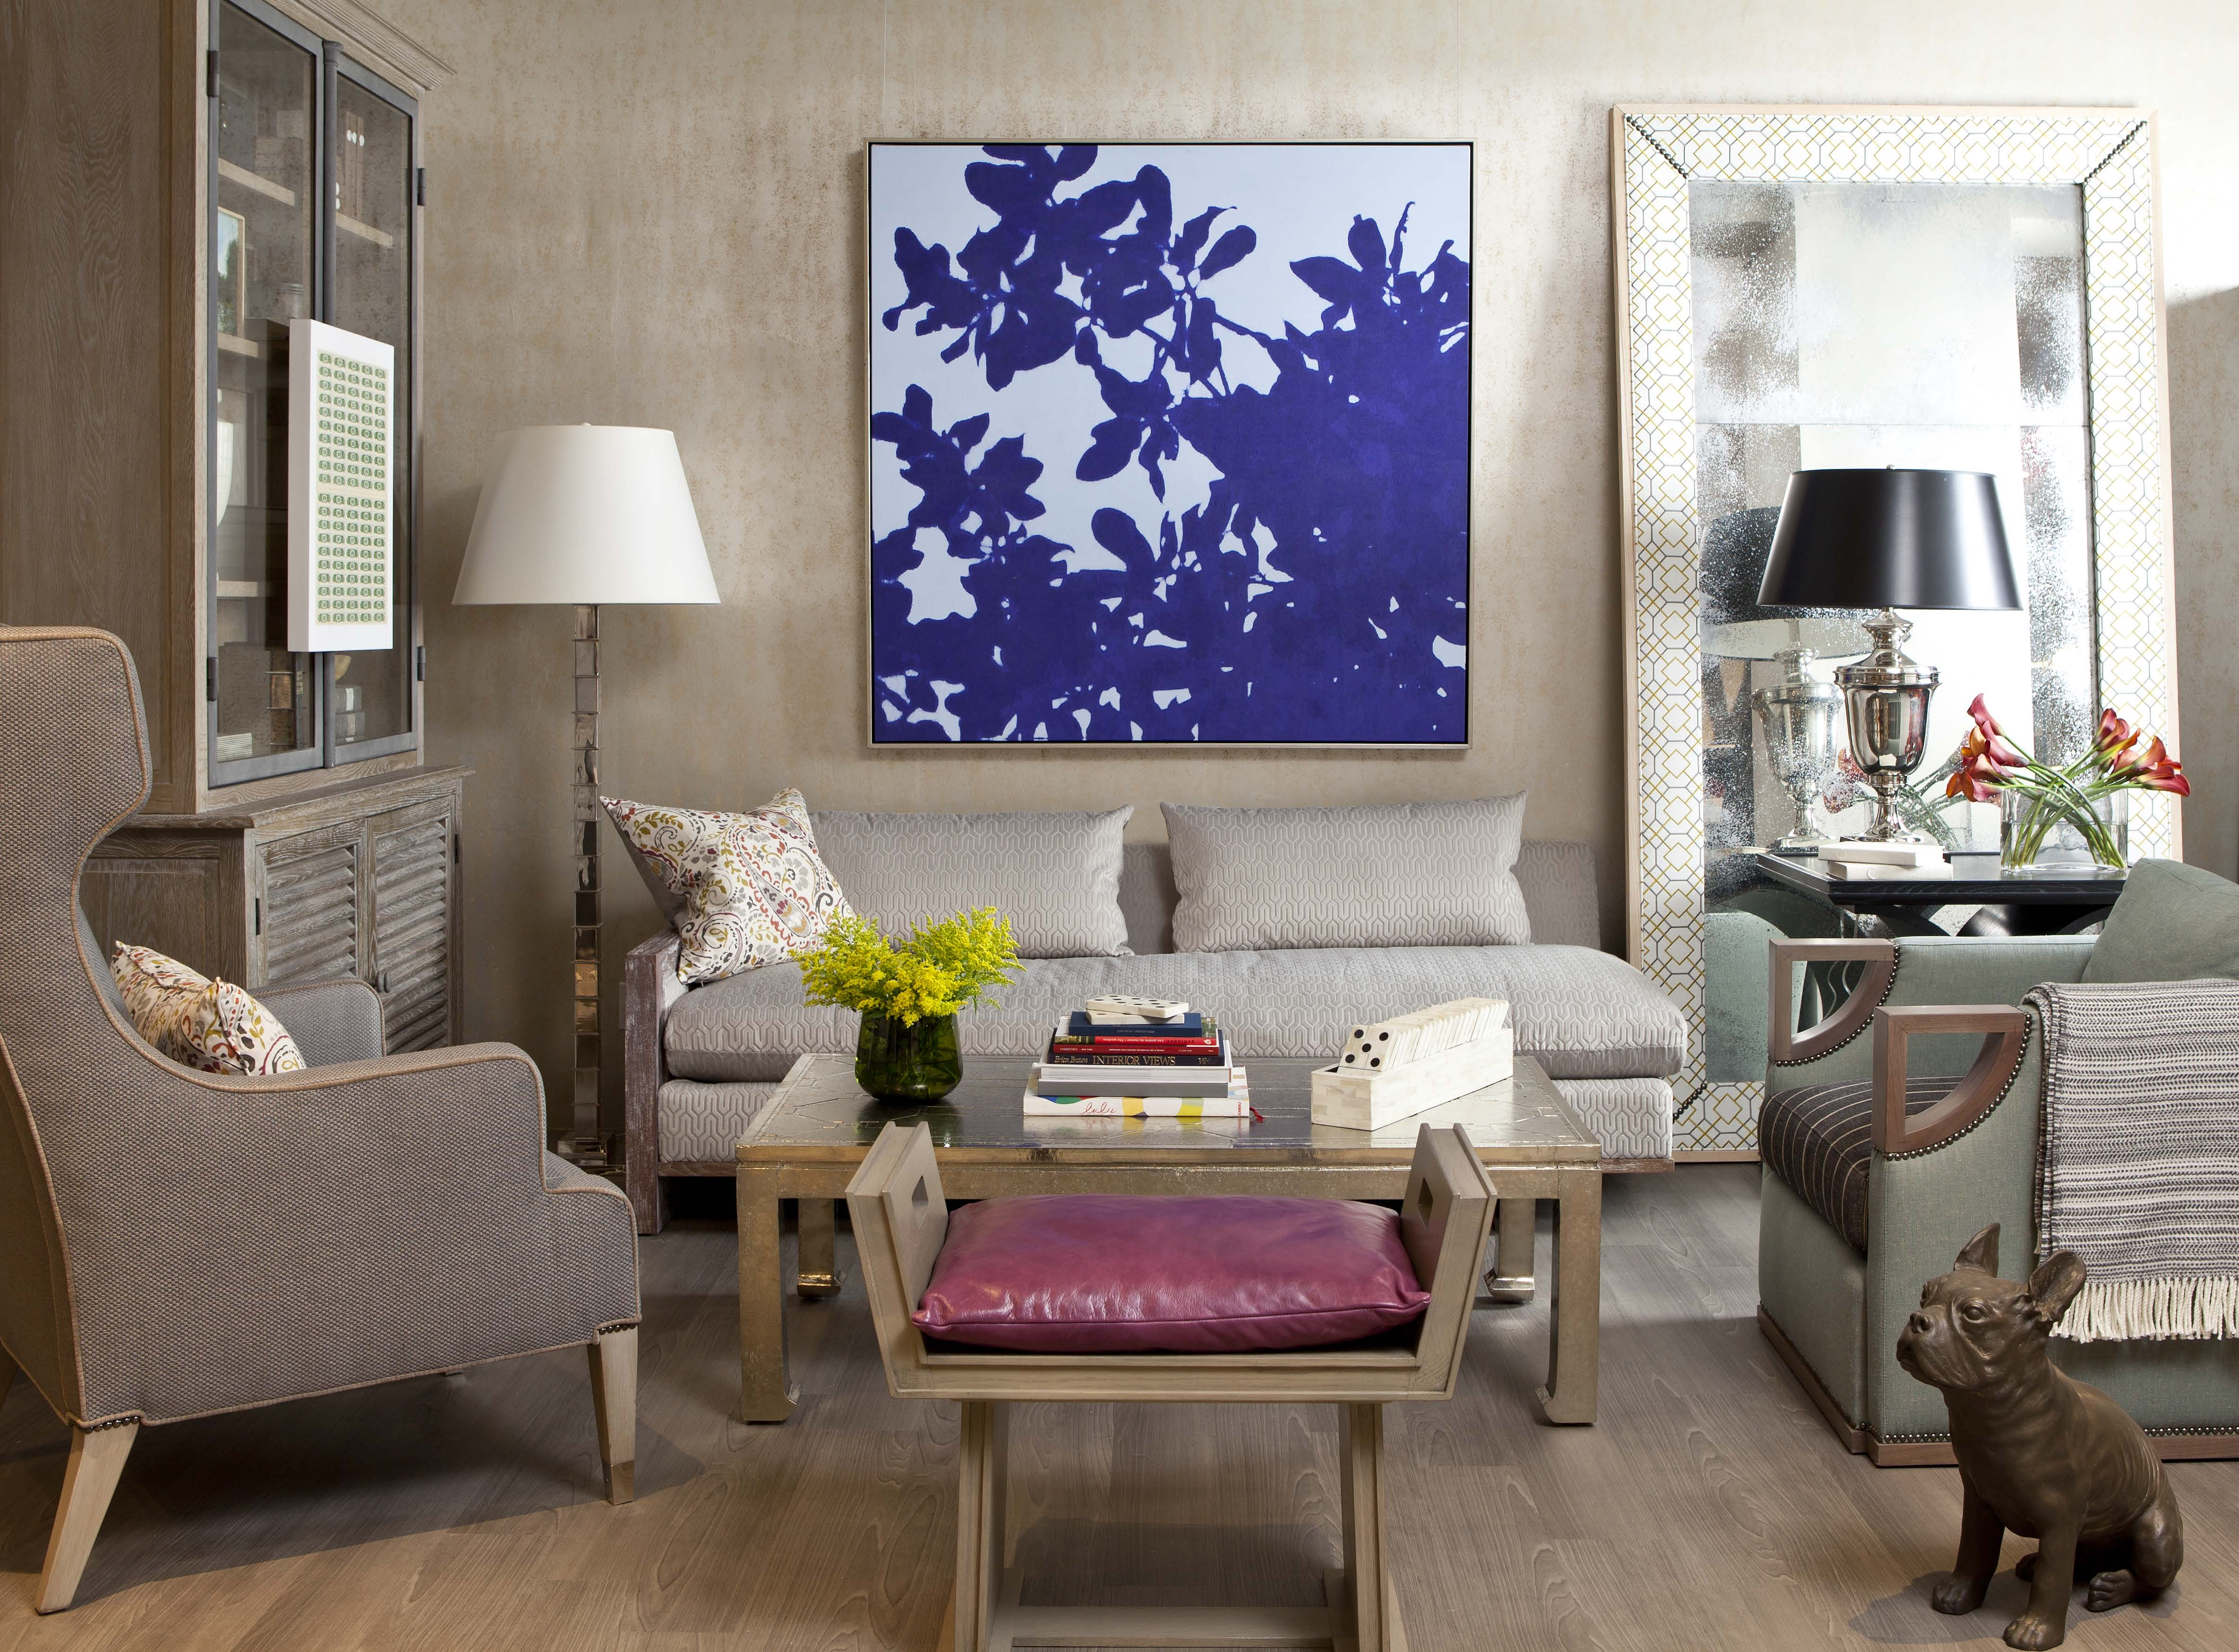 Thom Filicia The Editor At Large  Thom Filicia Shares Concept Behind Sedgwick